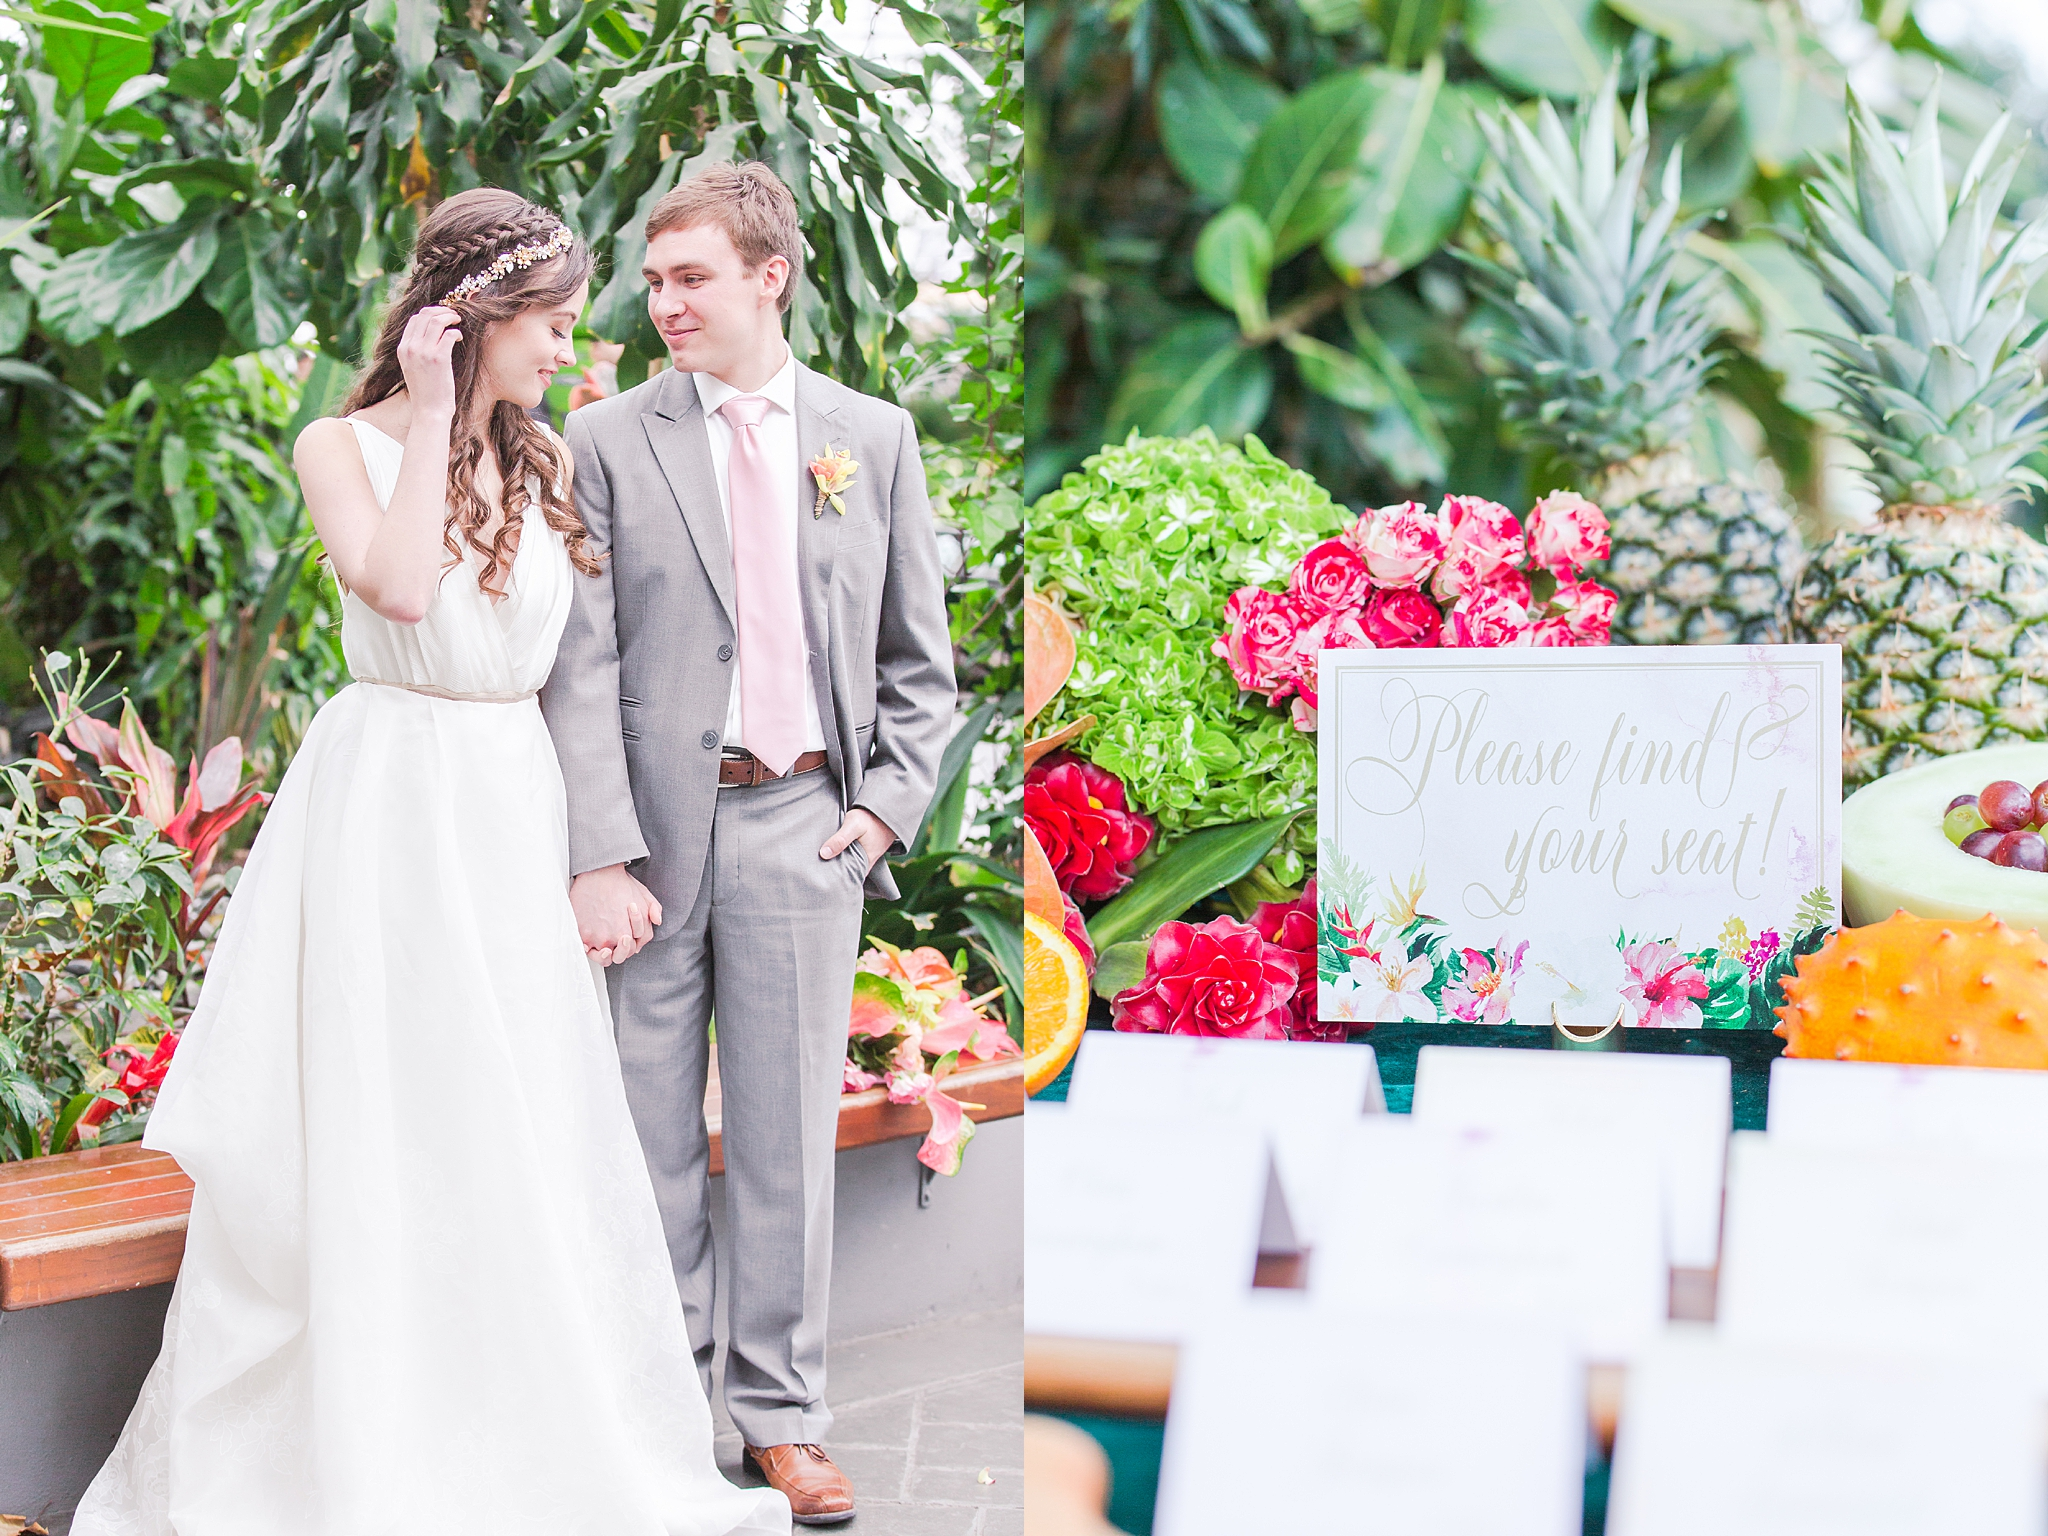 colorful-tropical-wedding-photos-at-the-crystal-gardens-in-chicago-illinois-by-courtney-carolyn-photography_0019.jpg